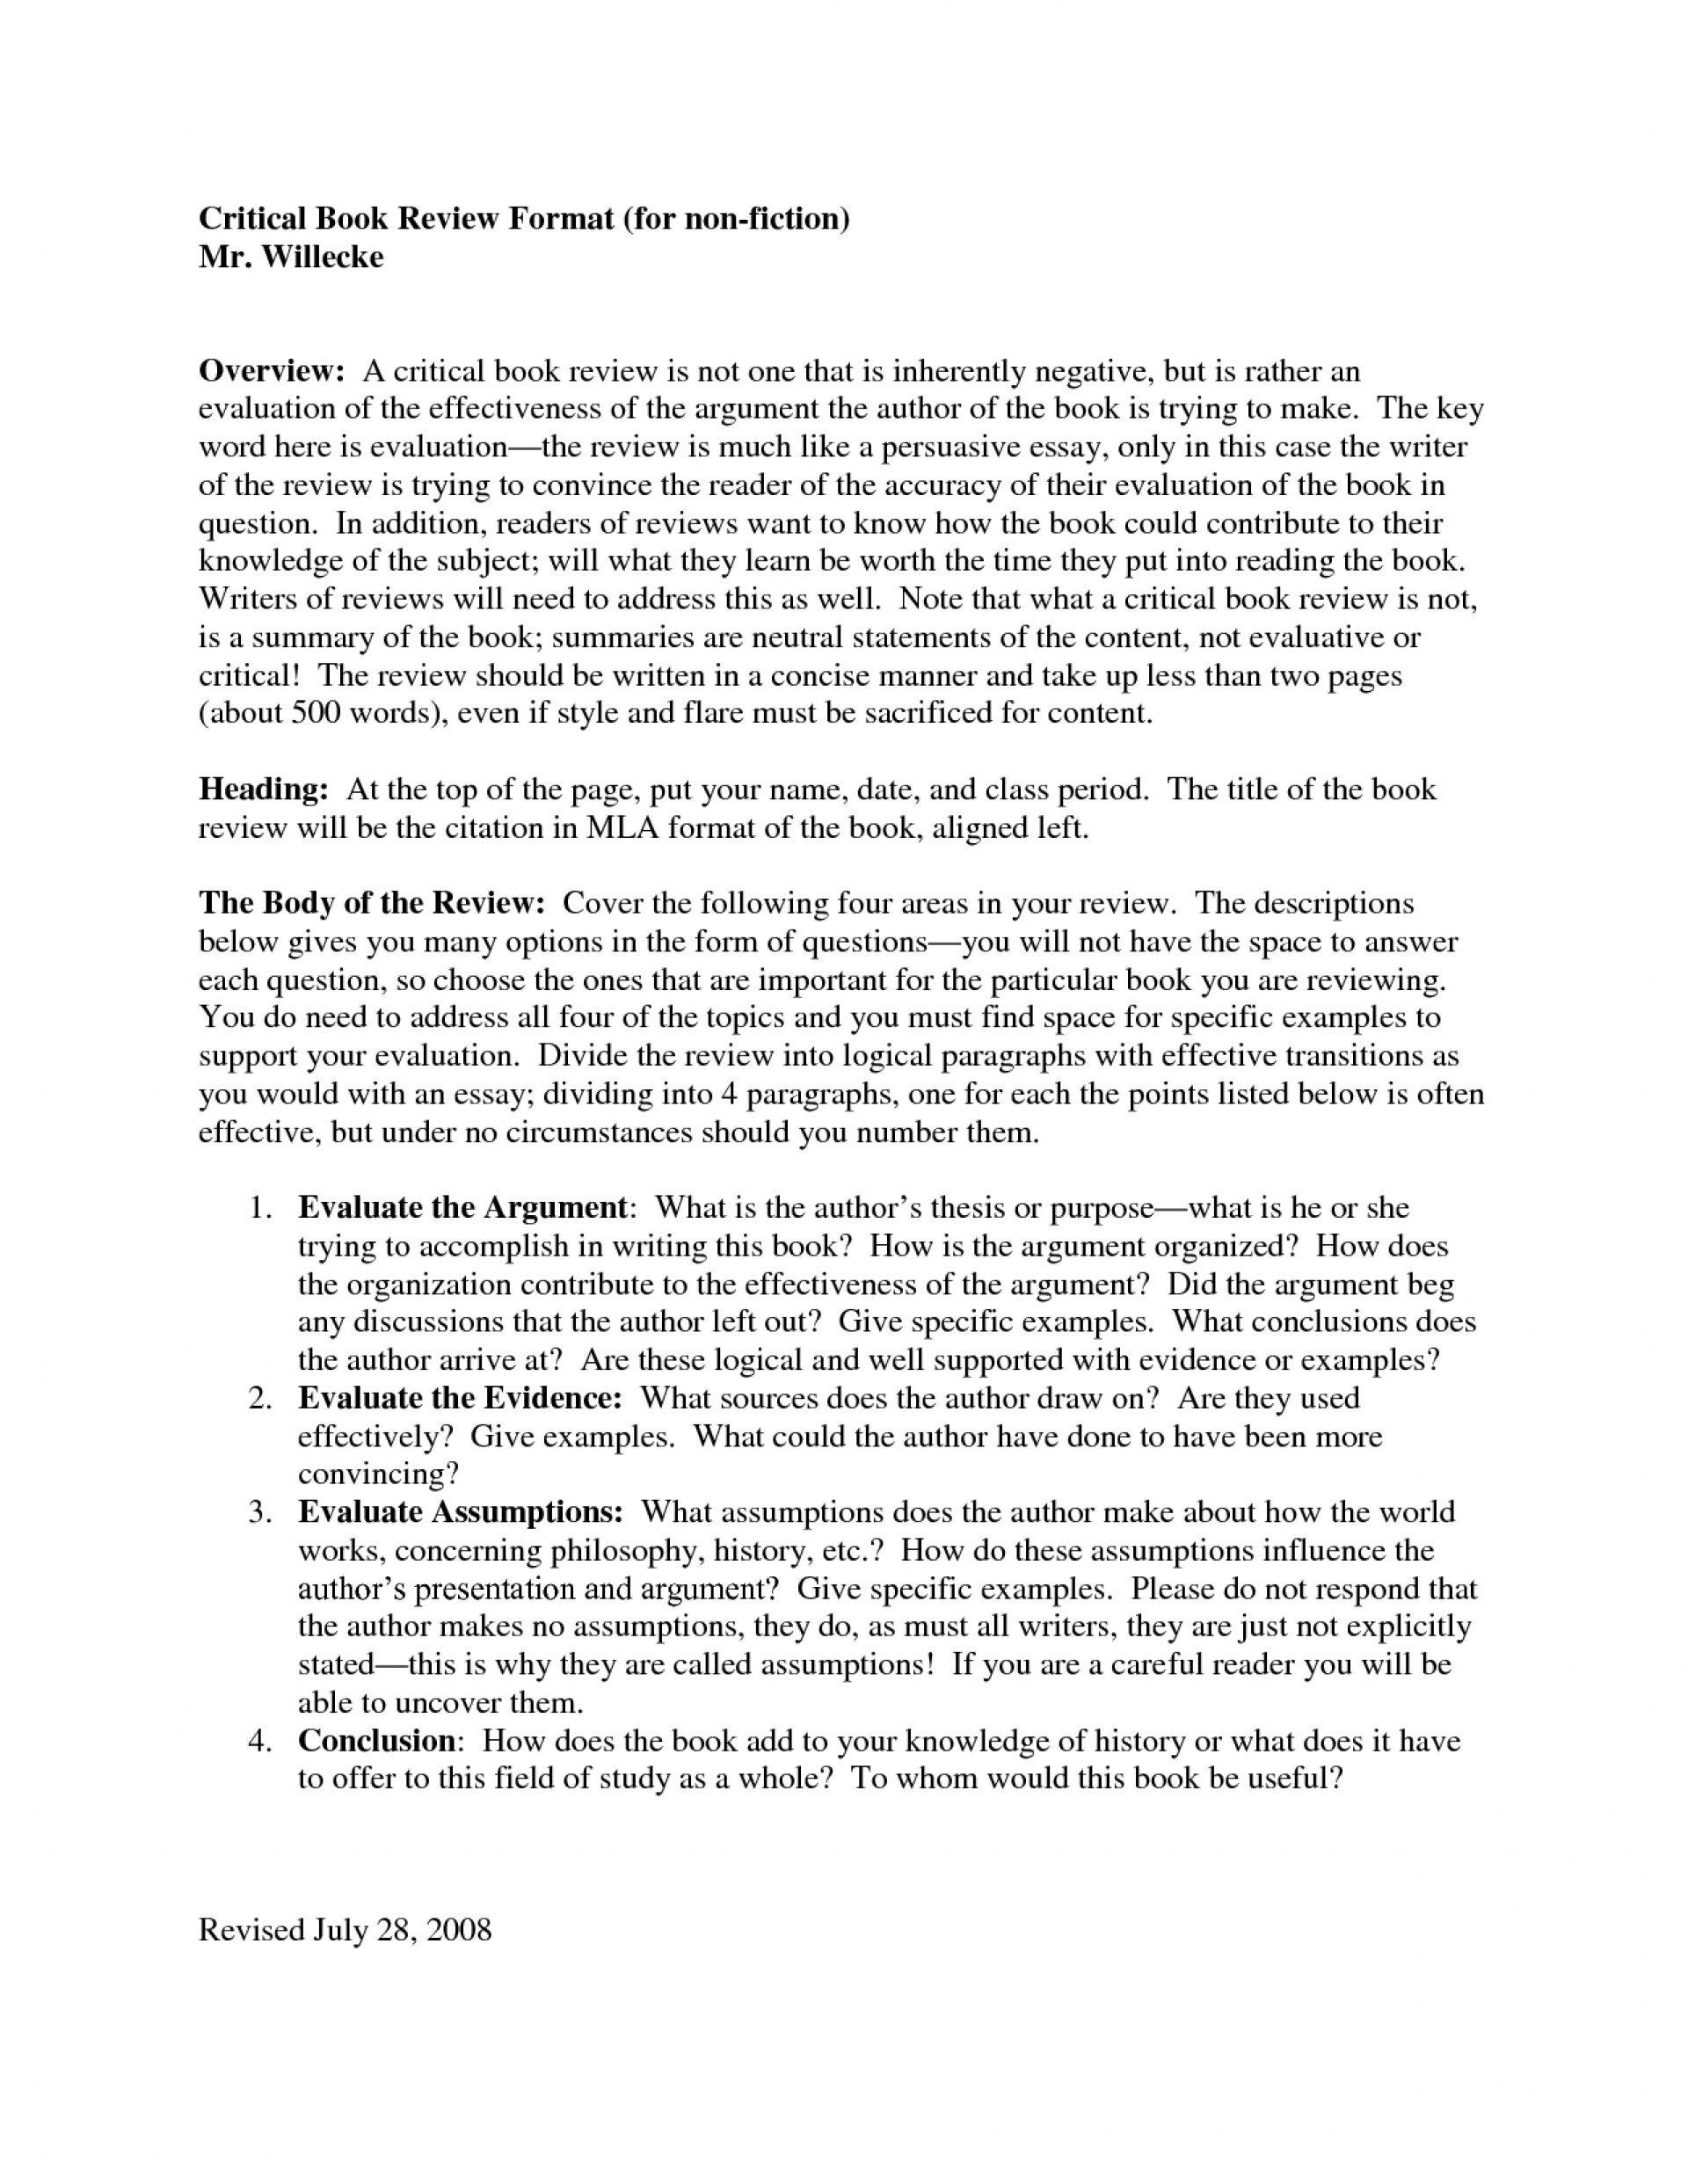 002 Essay Example Correct My Bunch Ideas Of Best Photos Critique Structure Critical Book Review In How To Write Apa Stupendous Auto Who Can Proofread 1920